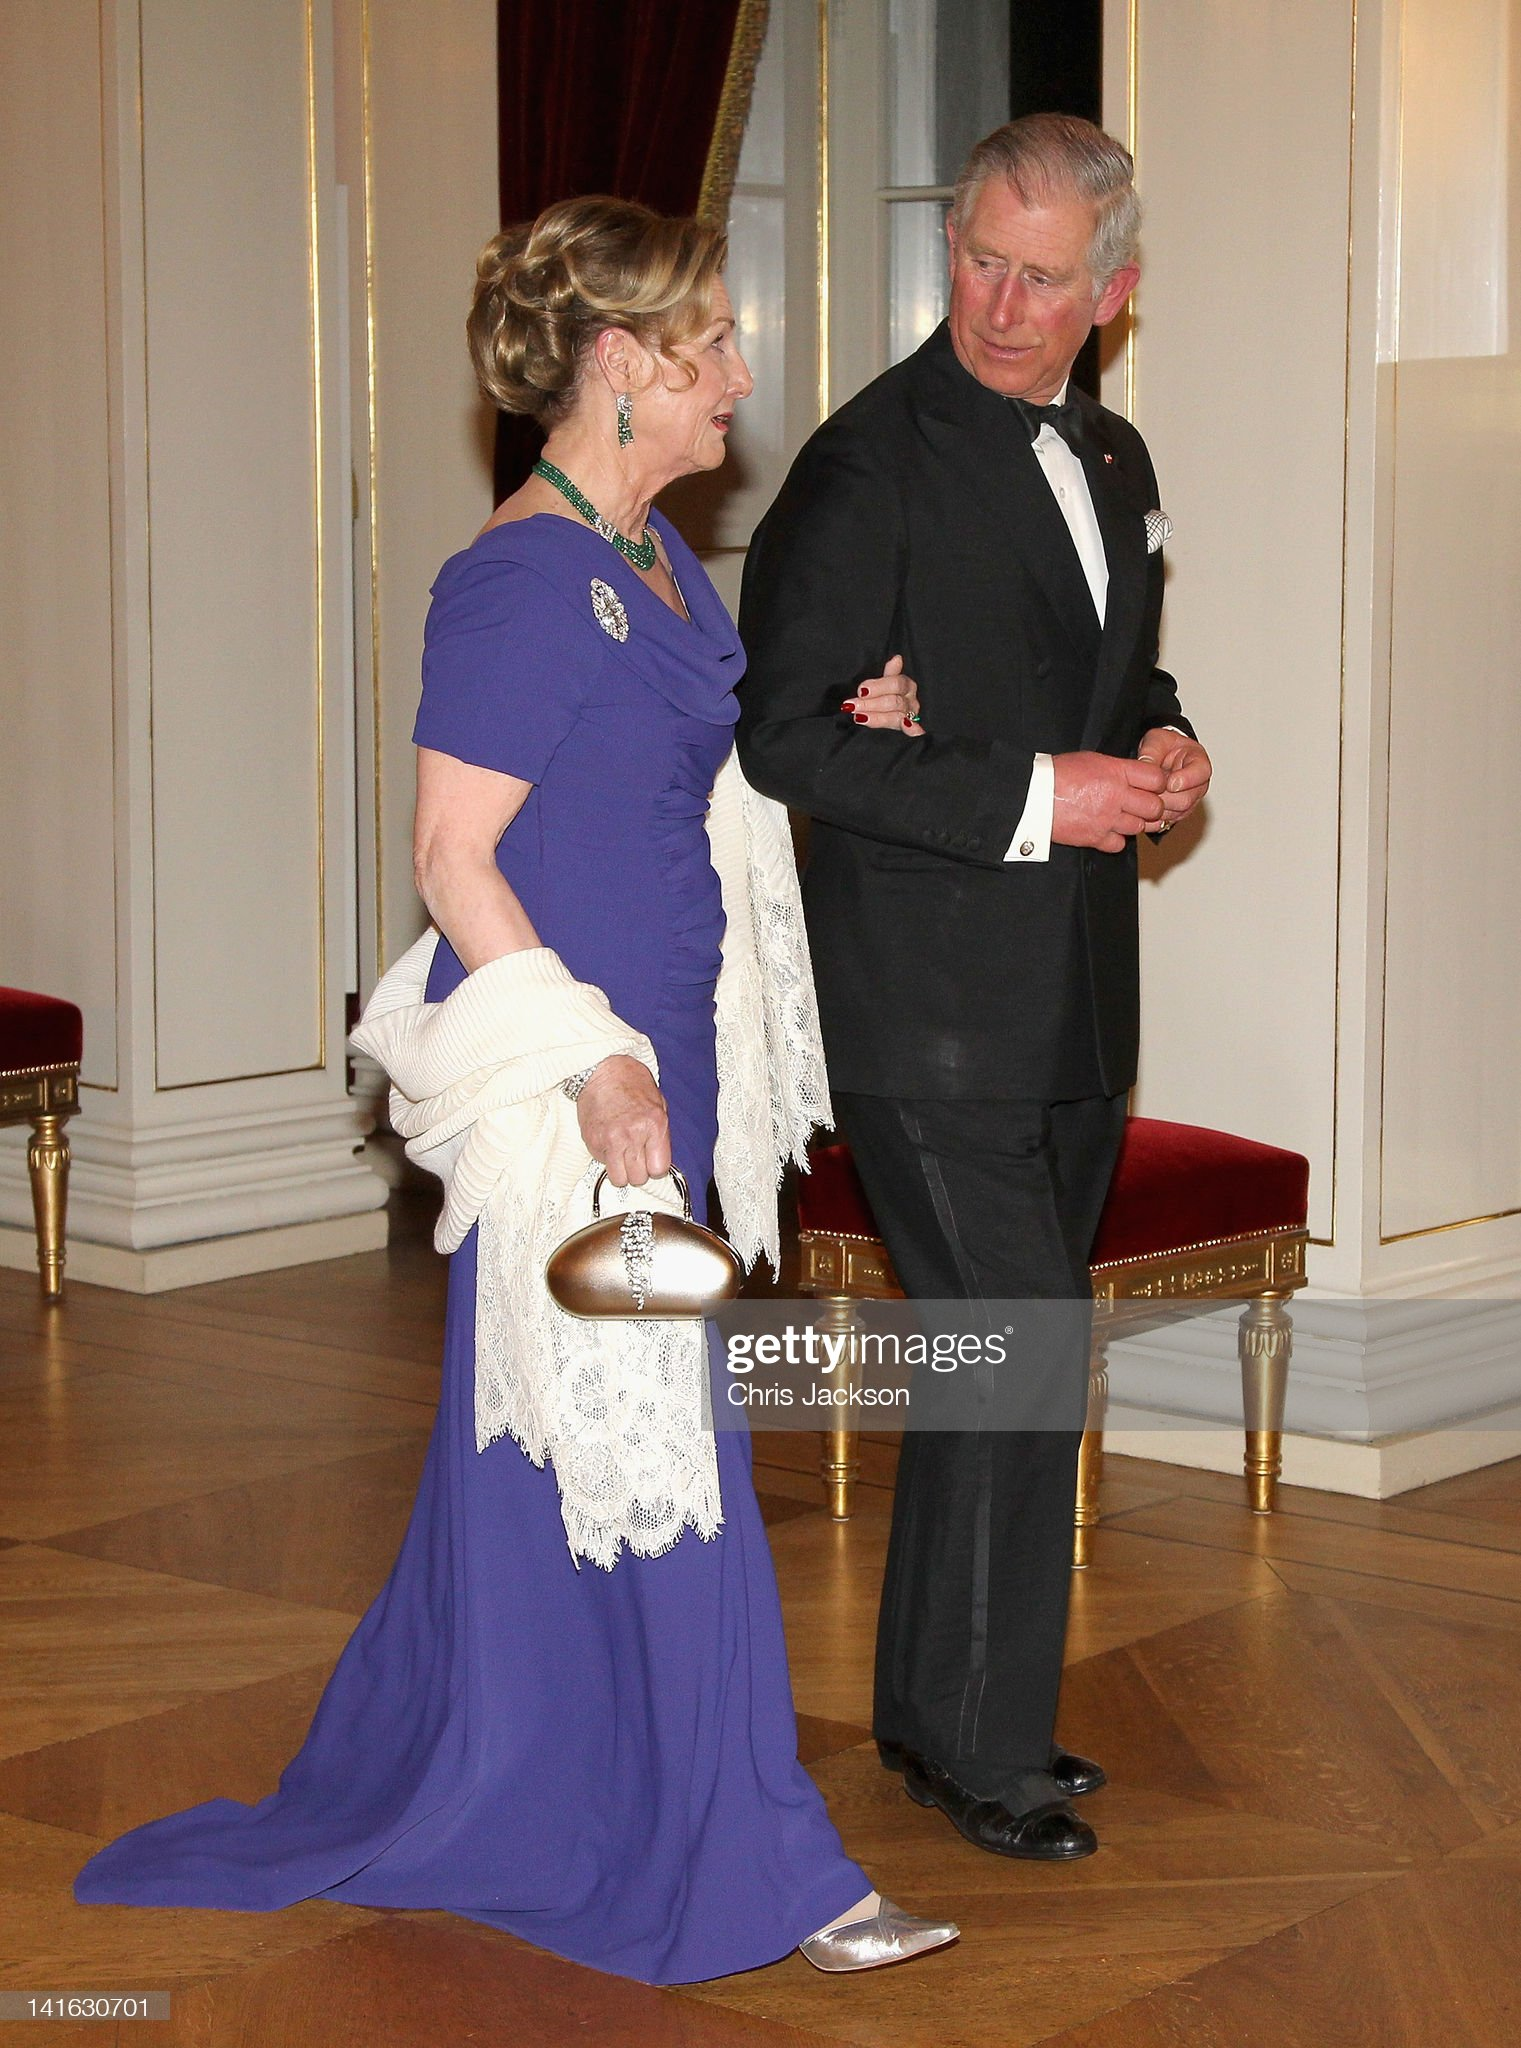 The Prince Of Wales And Duchess Of Cornwall Visit Norway : News Photo